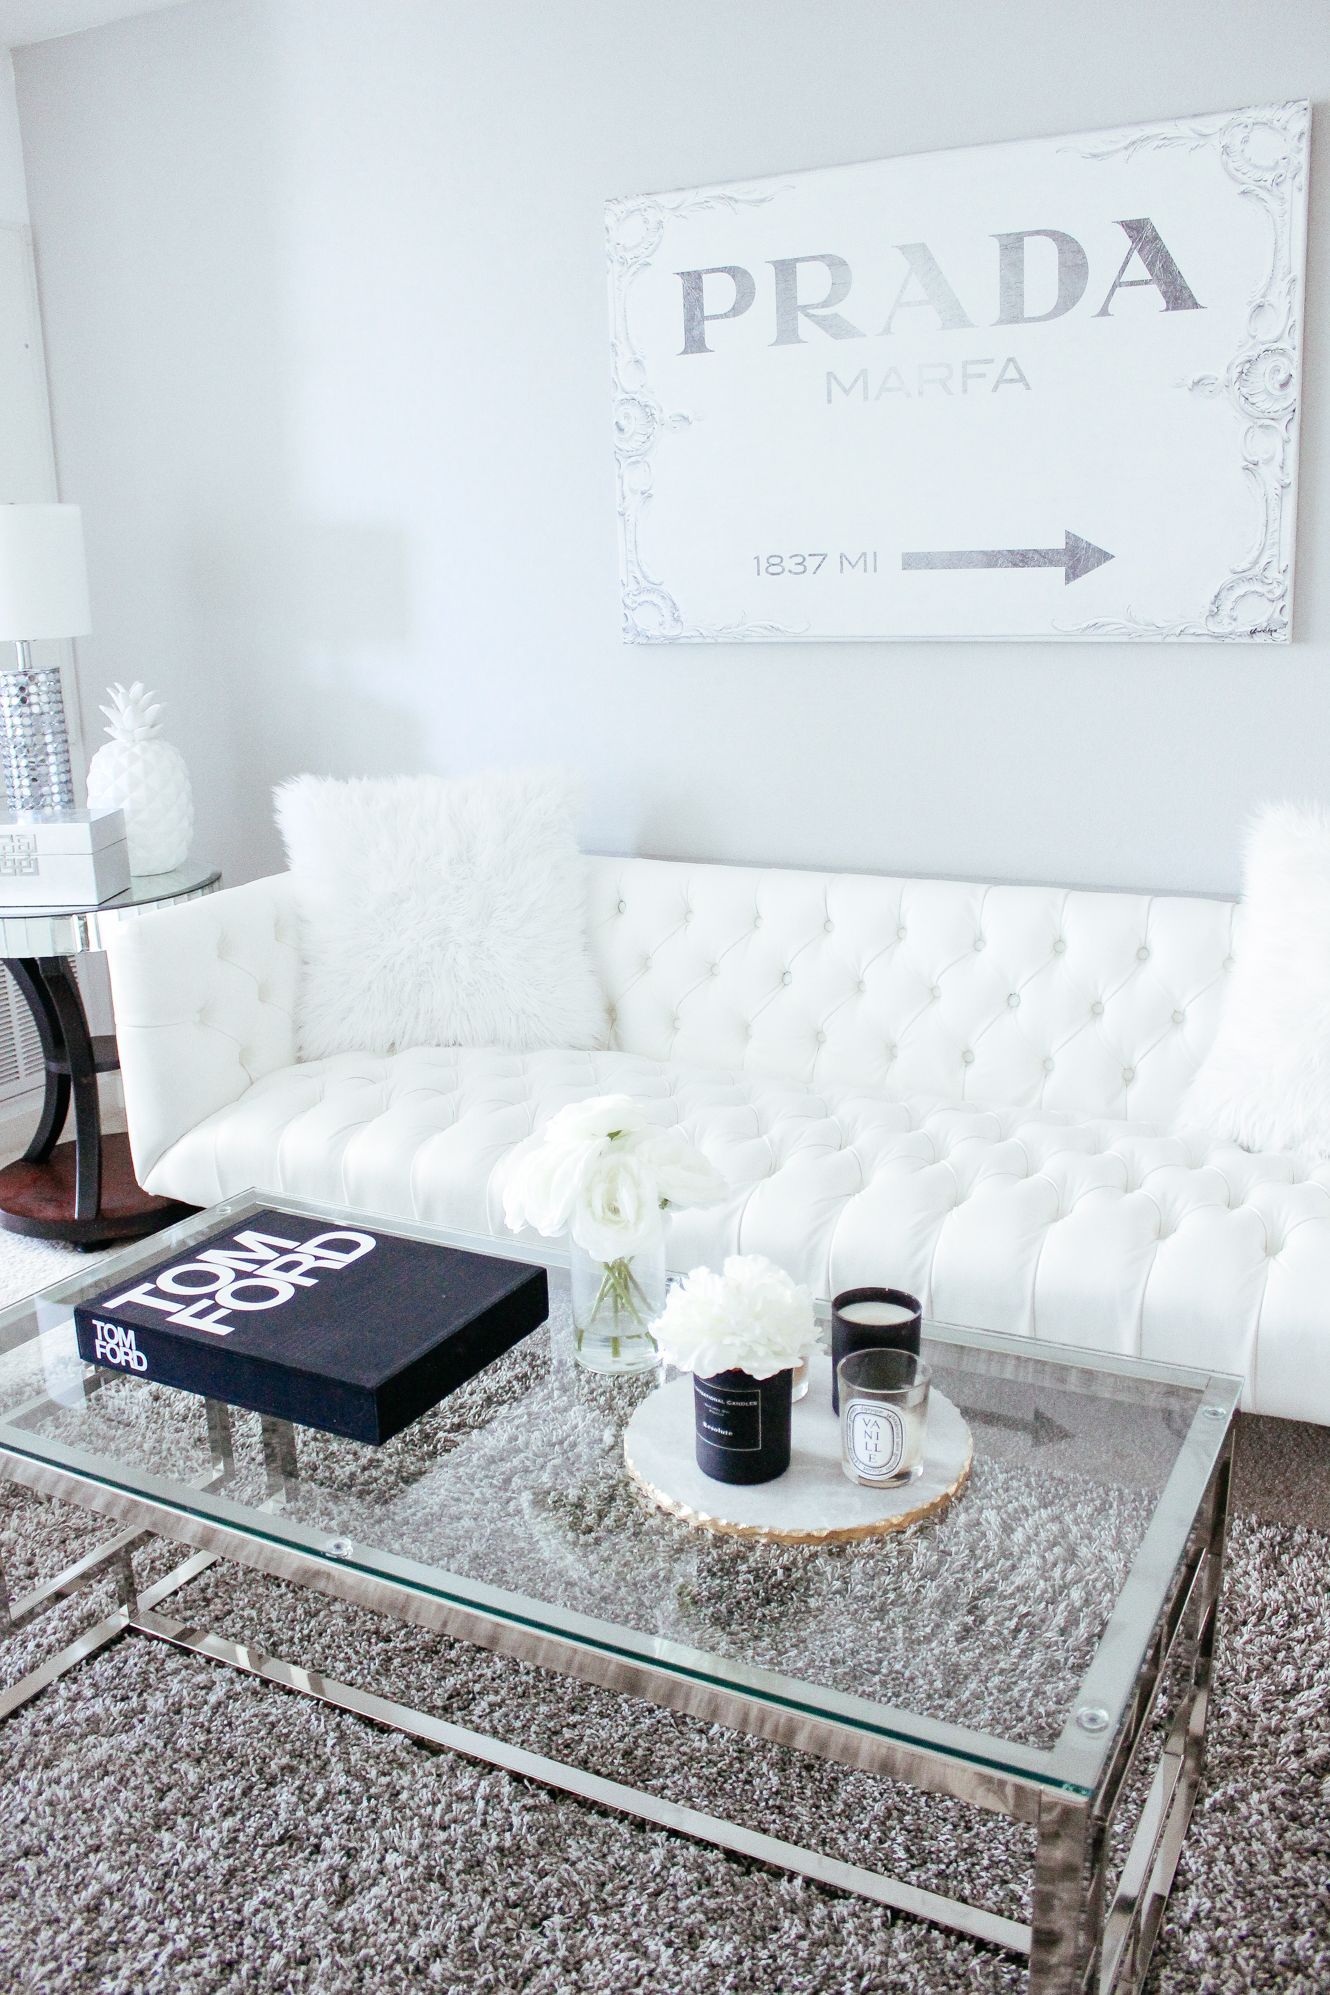 Blondie in the City Home Decor | Hayley Larue Home Decor | @ZGallerie living room decor | Tom Ford Coffee Table Book | Tom Ford Book | Black and White Decor | #homedecor #home #glamdecor #blackandwhite